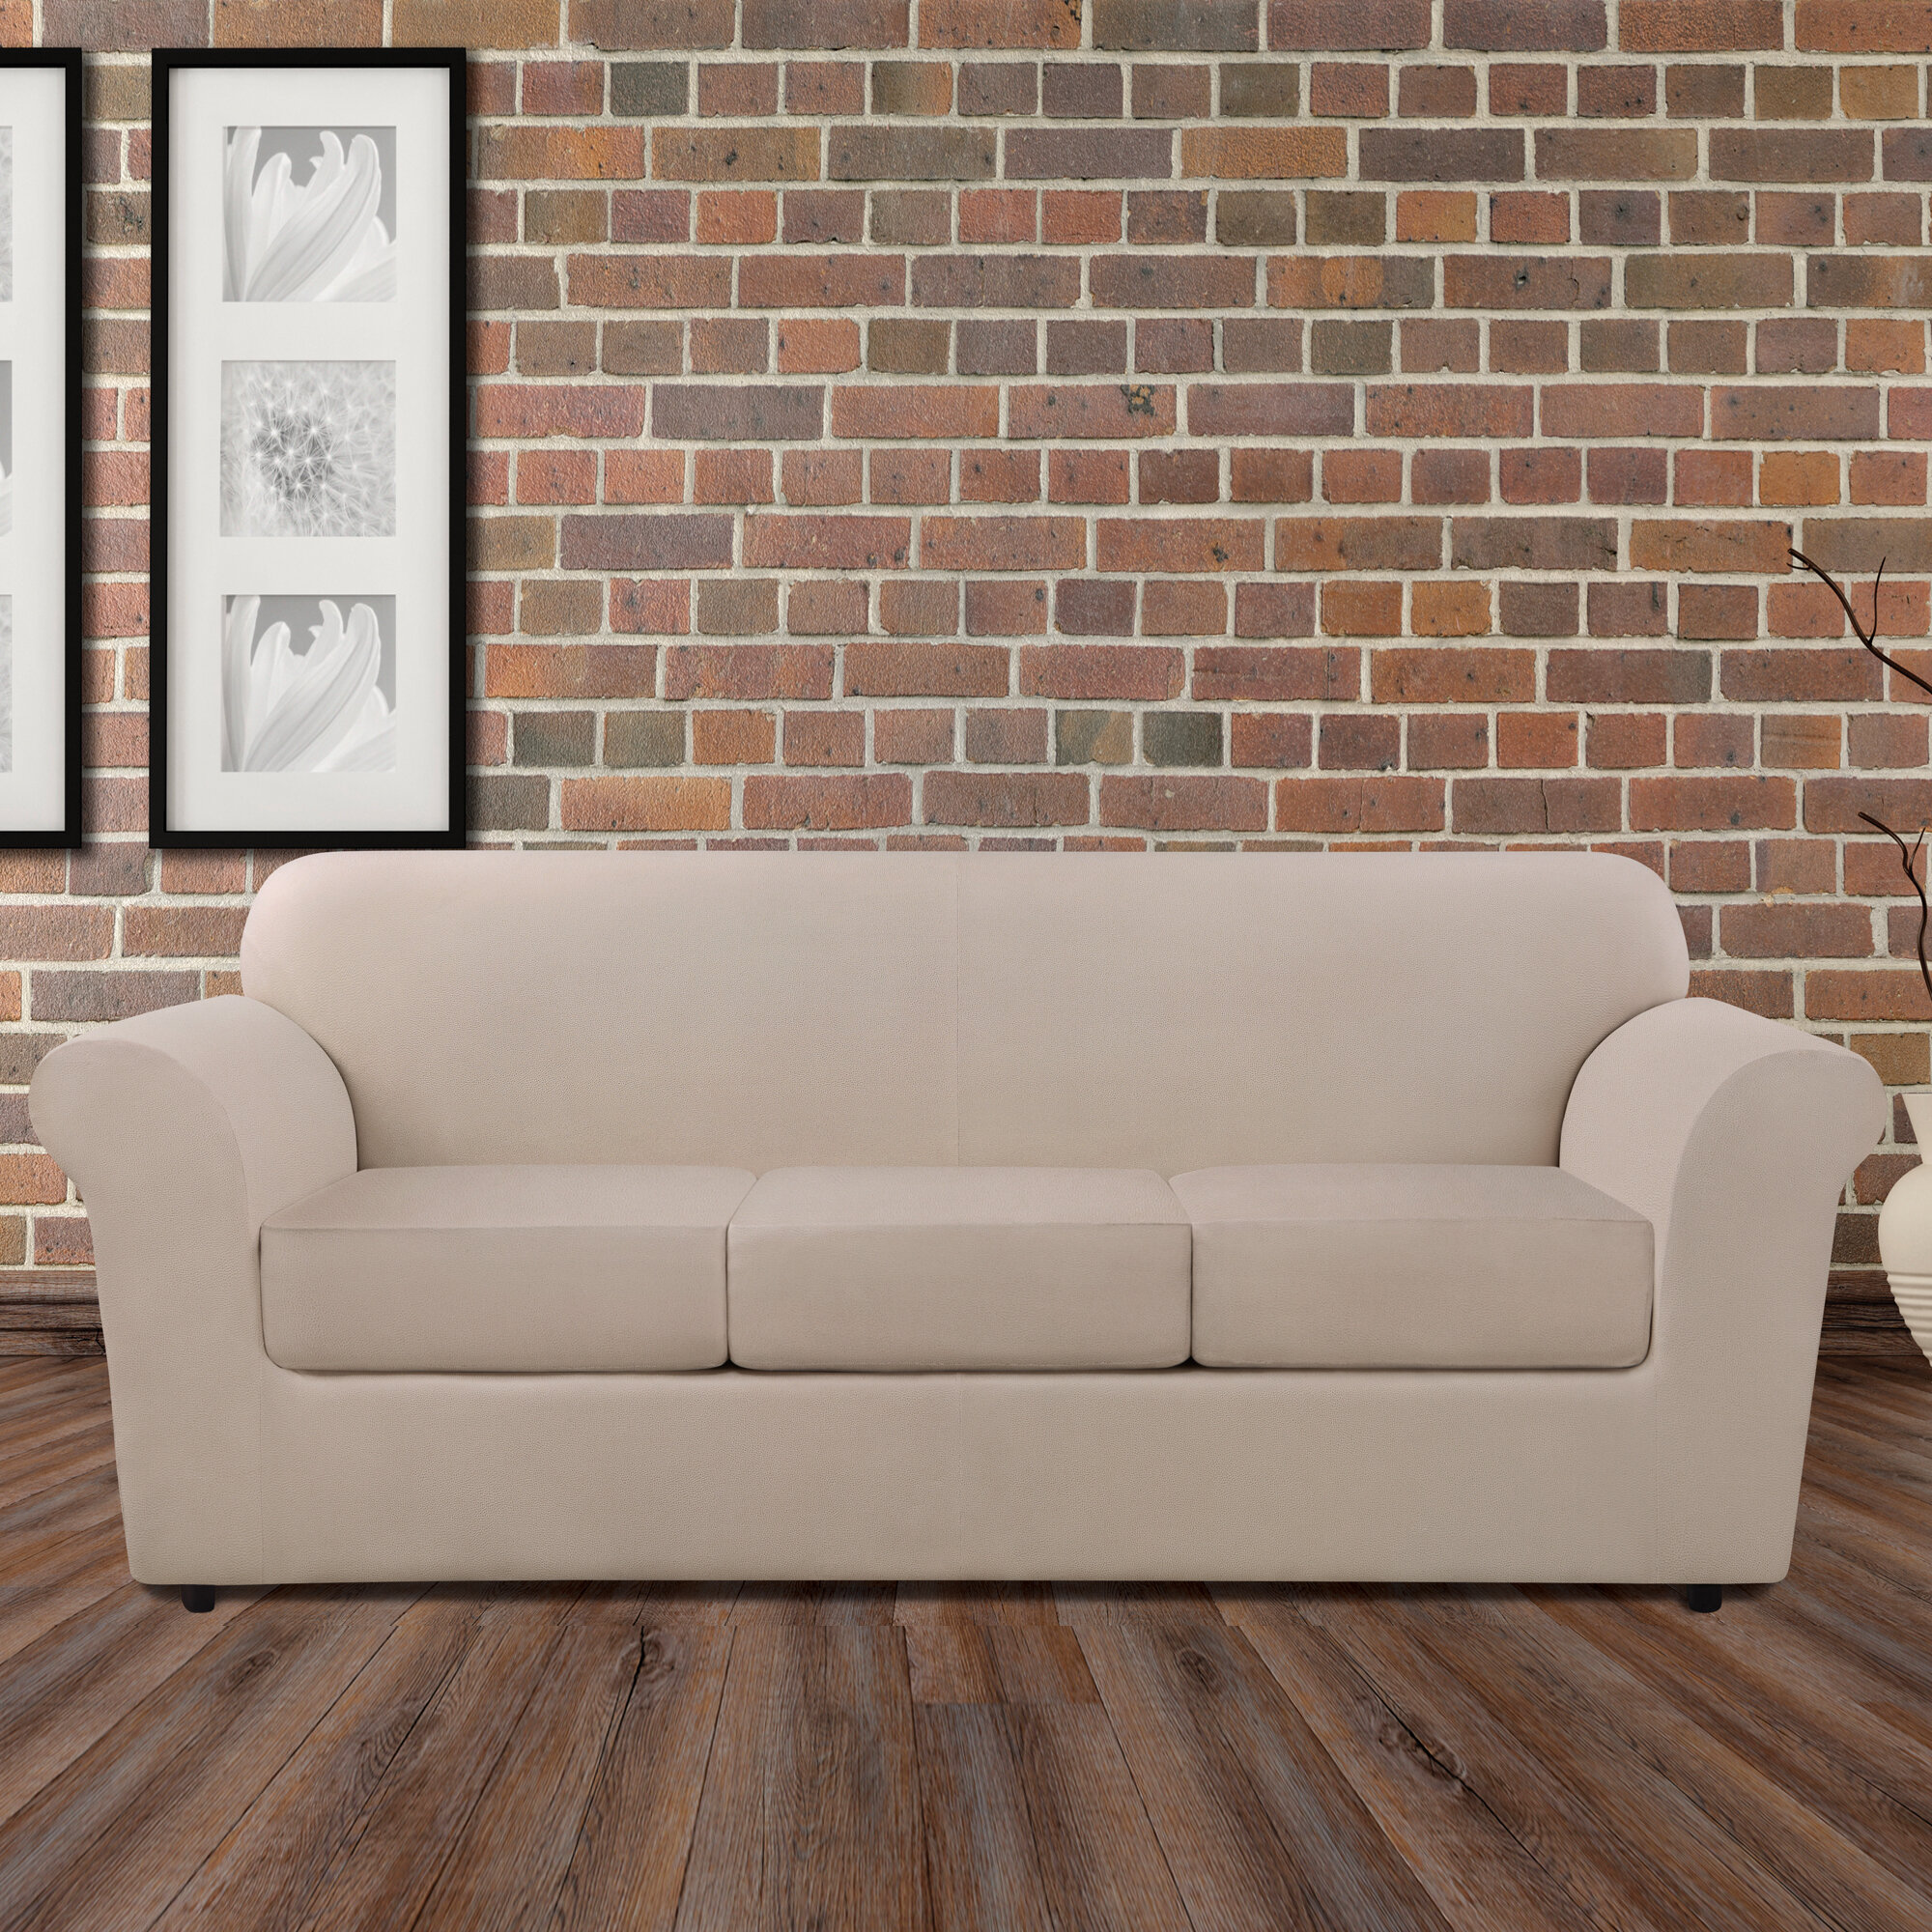 Swell Ultimate Heavyweight Stretch Leather 4 Piece Box Cushion Sofa Slipcover Set Download Free Architecture Designs Salvmadebymaigaardcom